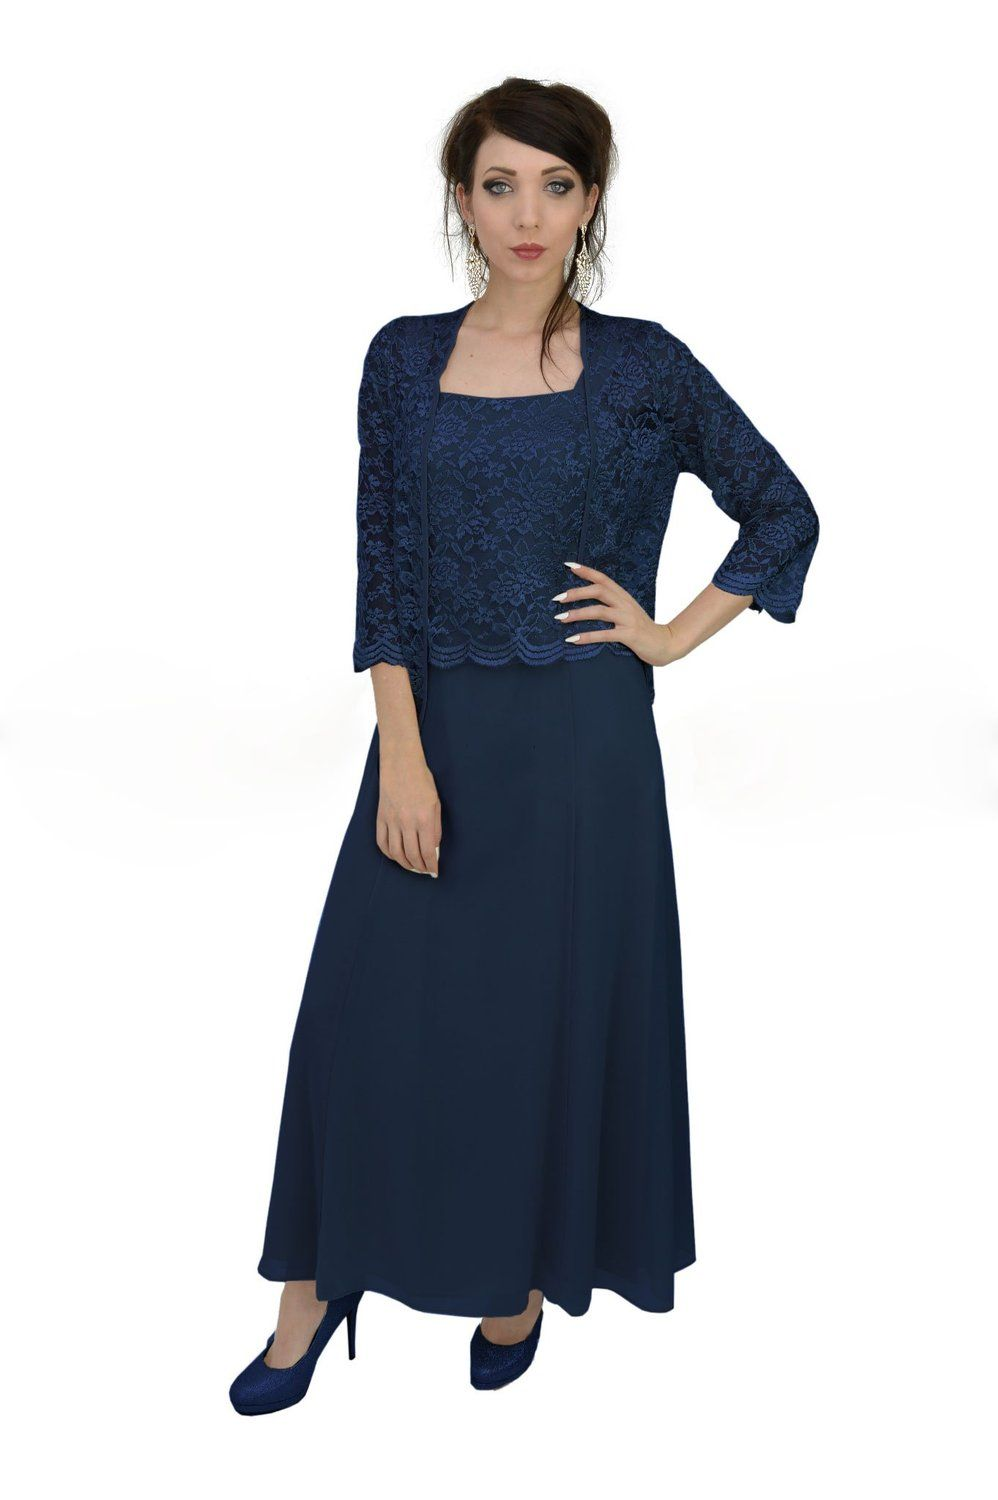 ffd96ca552ca Plus Size Womens Clothing Affordable. The Dress Outlet Long Formal Lace  Dress Jacket Mother of the Bride at Amazon Women's Clothing store: